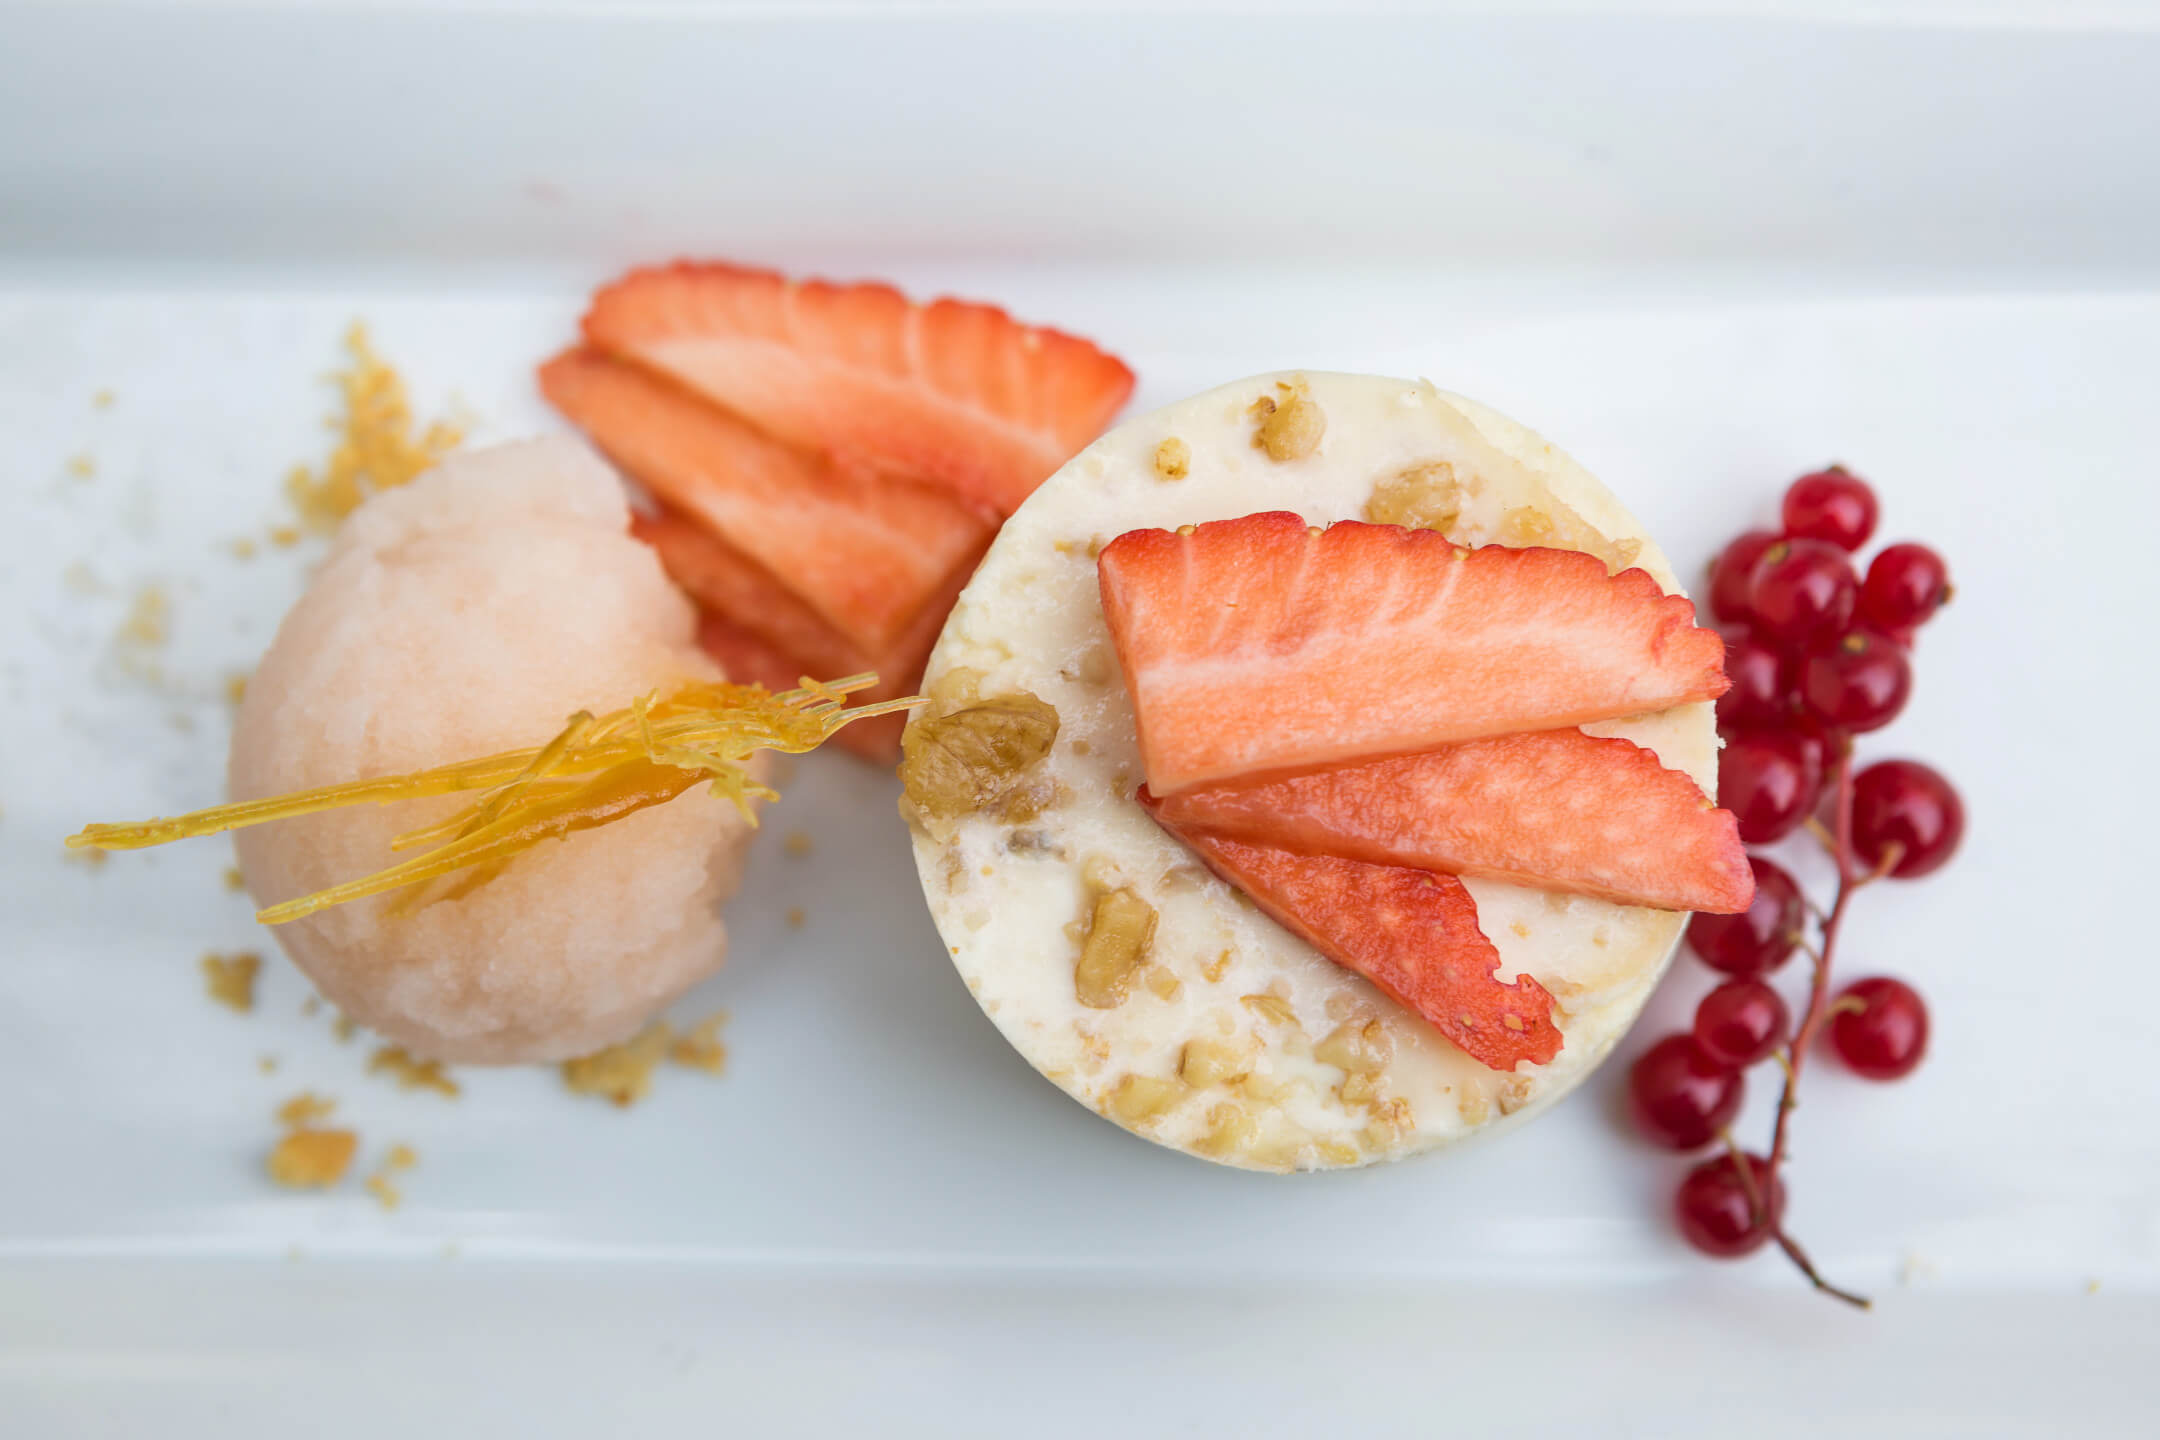 Dessert plate with red fruits